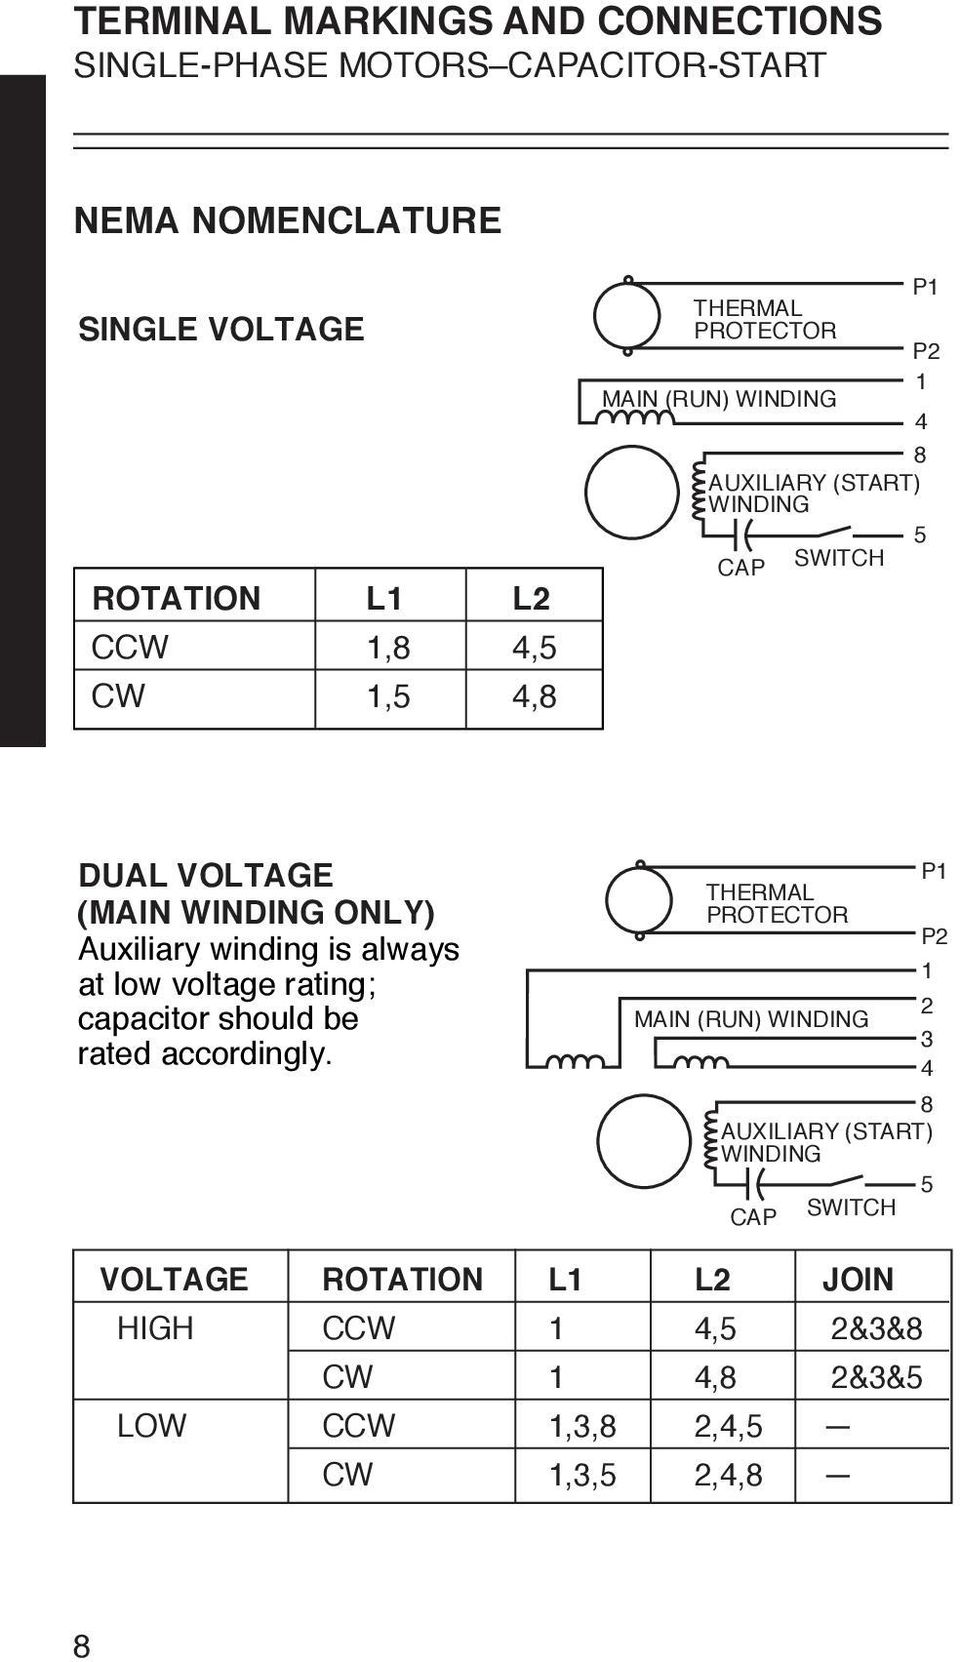 medium resolution of auxiliary winding is always at low voltage rating capacitor should be rated accordingly